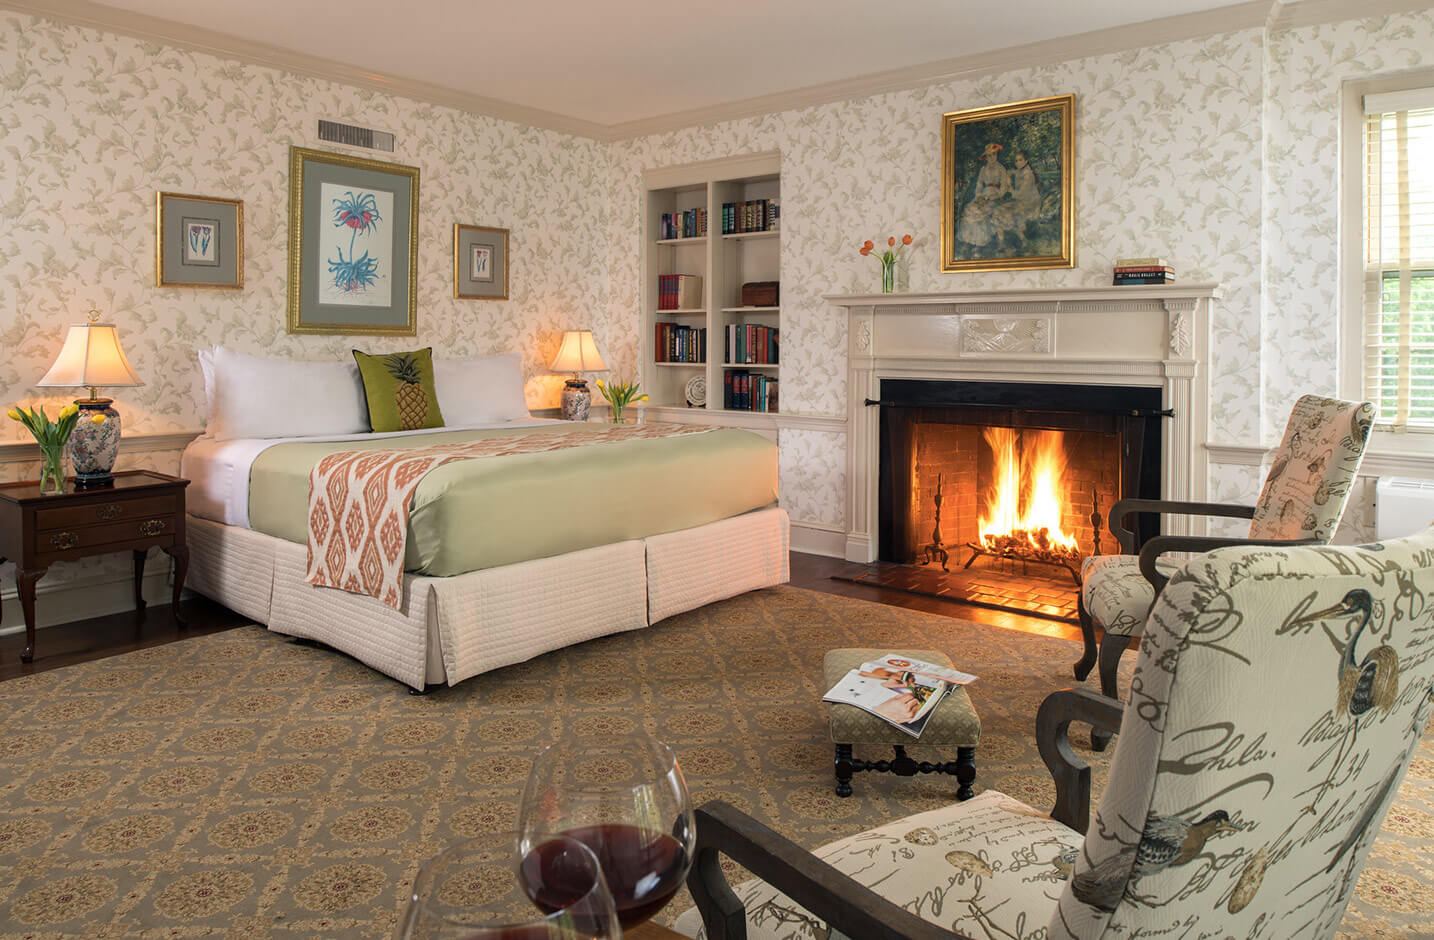 Marmaduke Room bed and fireplace at our B&B in Chestertown